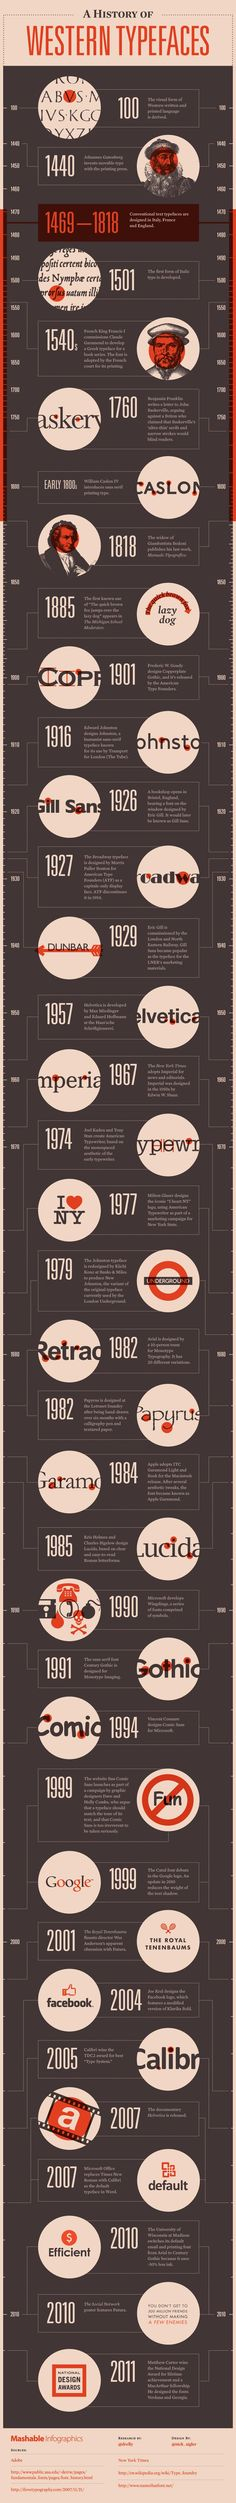 A history of western typefaces. If you like typography read Simon Garfield's Just My Type.